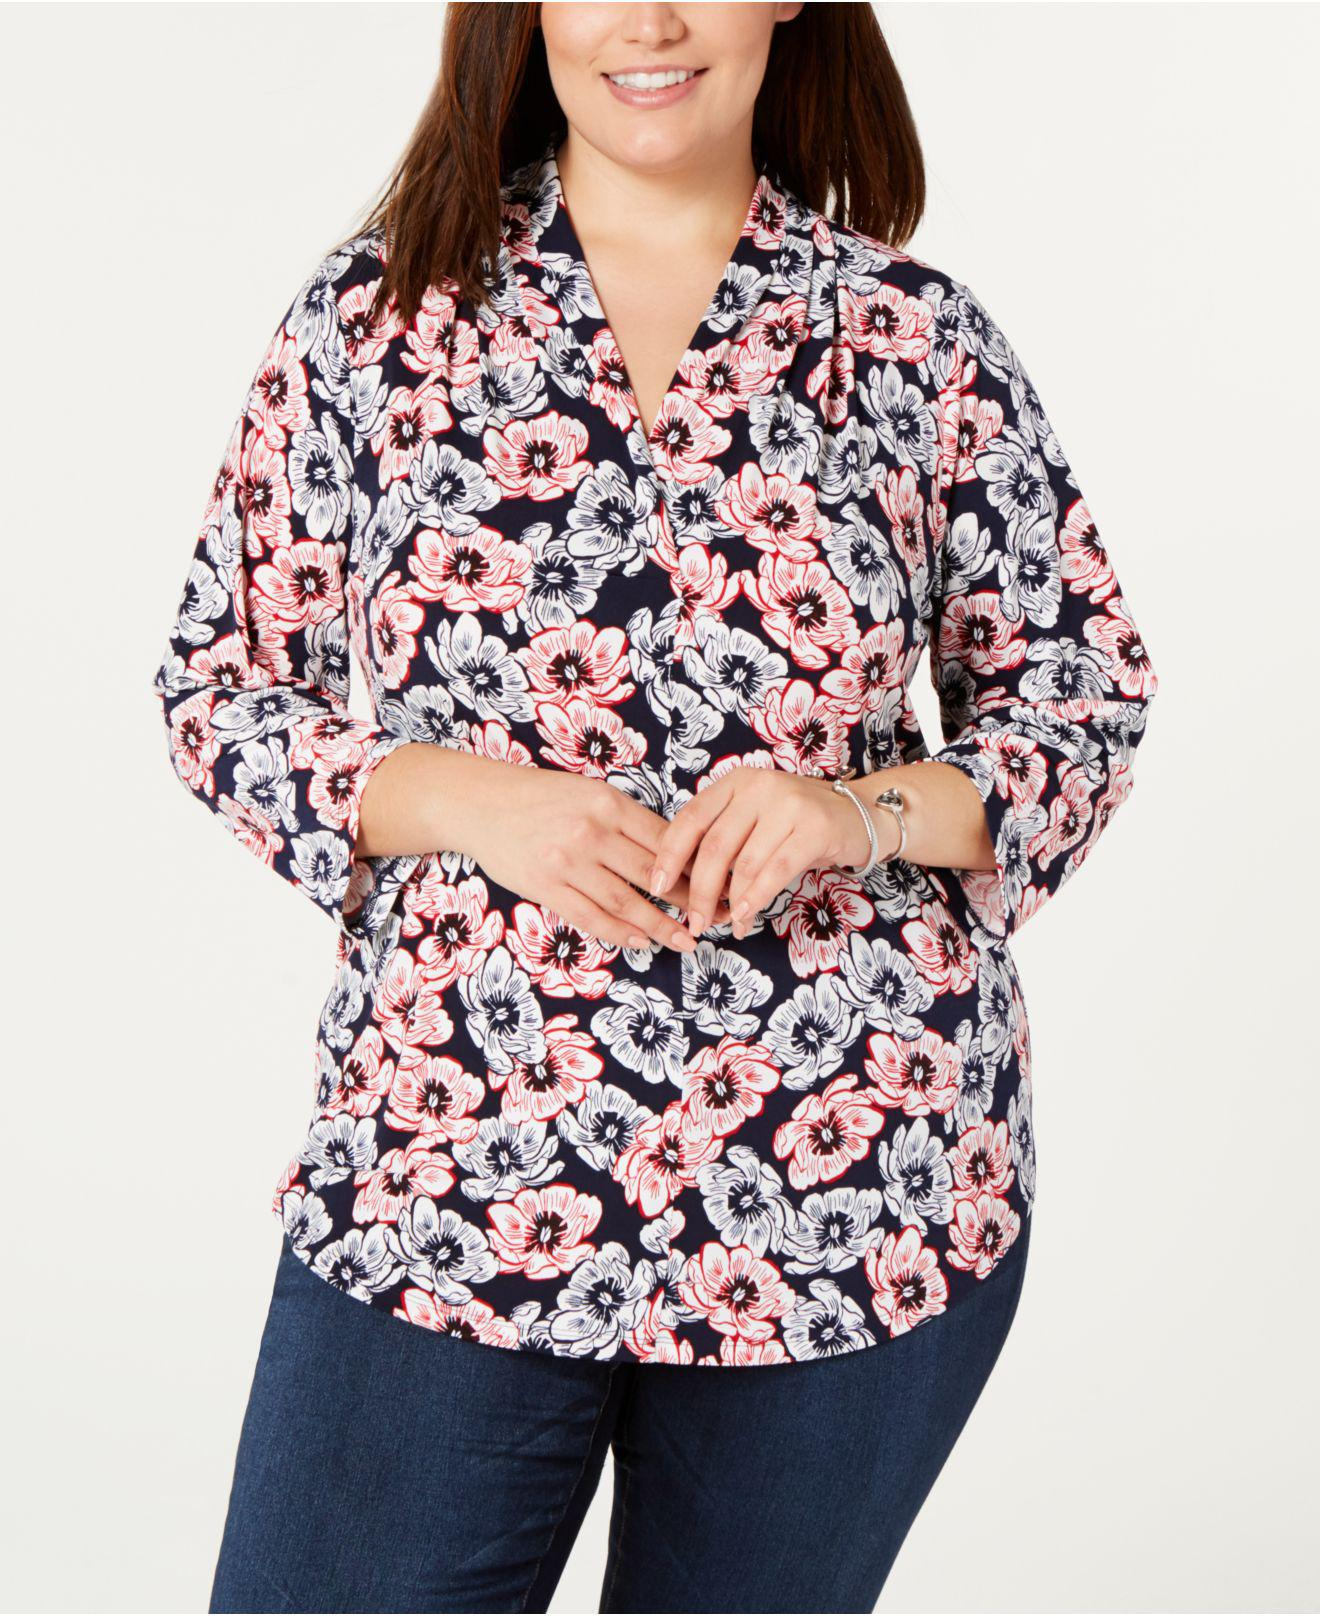 ef50171264c88 Charter Club. Women s Blue Plus Size Printed 3 4-sleeve Top ...